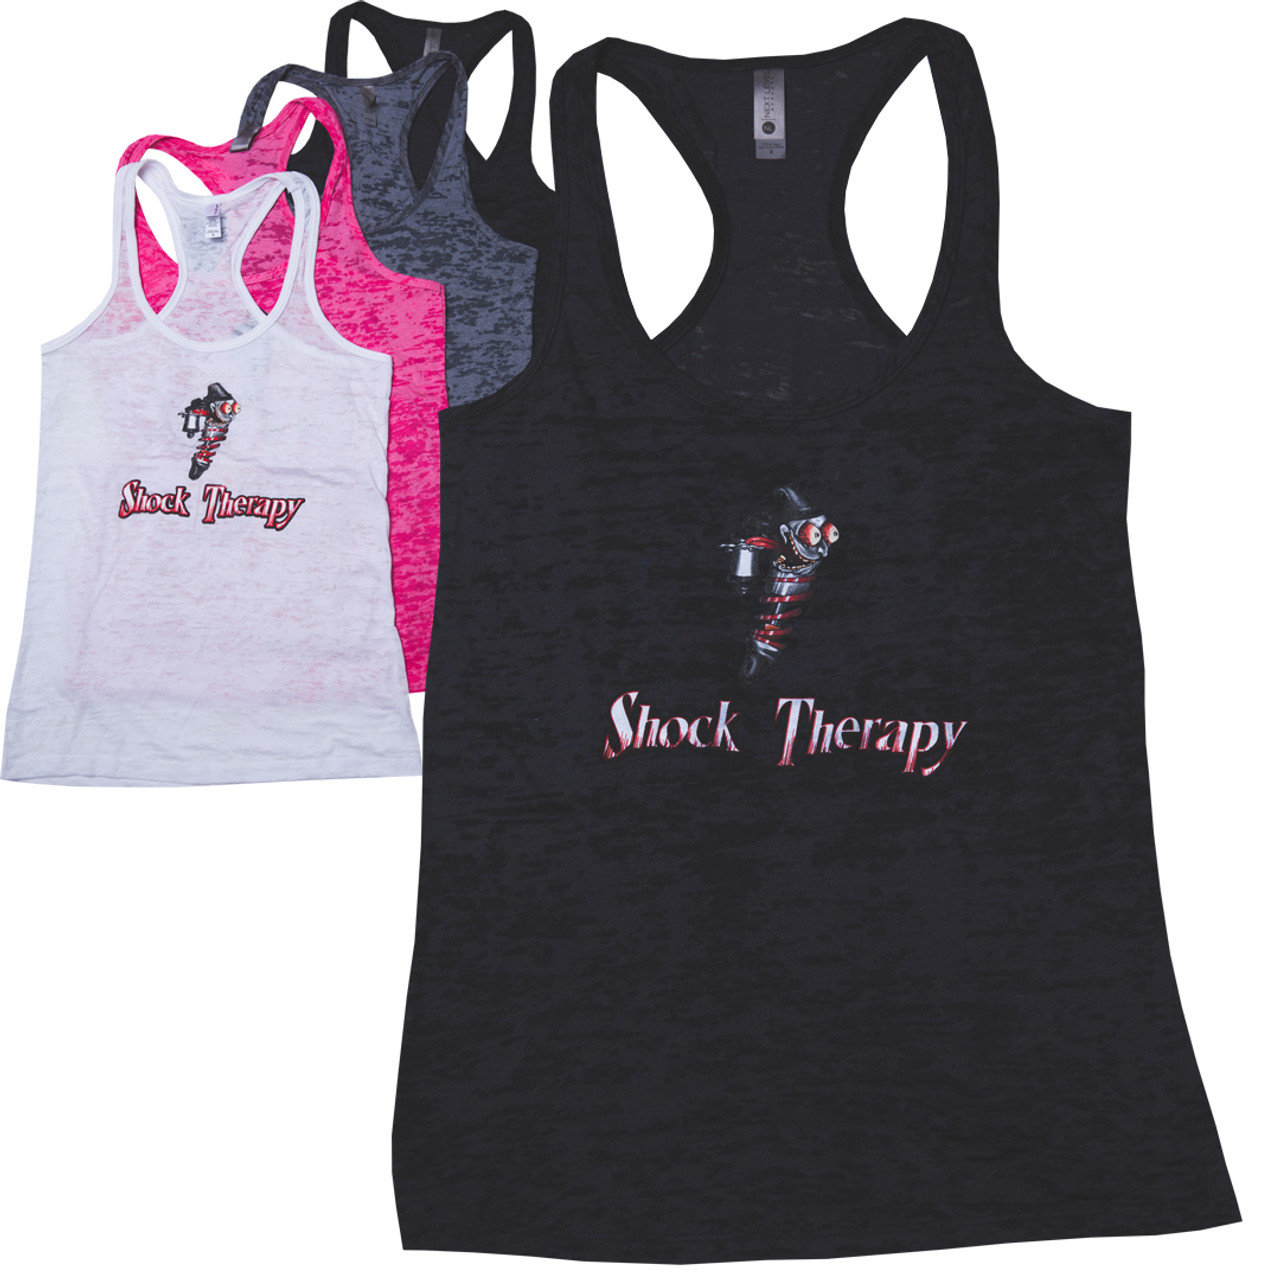 Shock Therapy Women's Burnout Racer Back (Free Shipping)